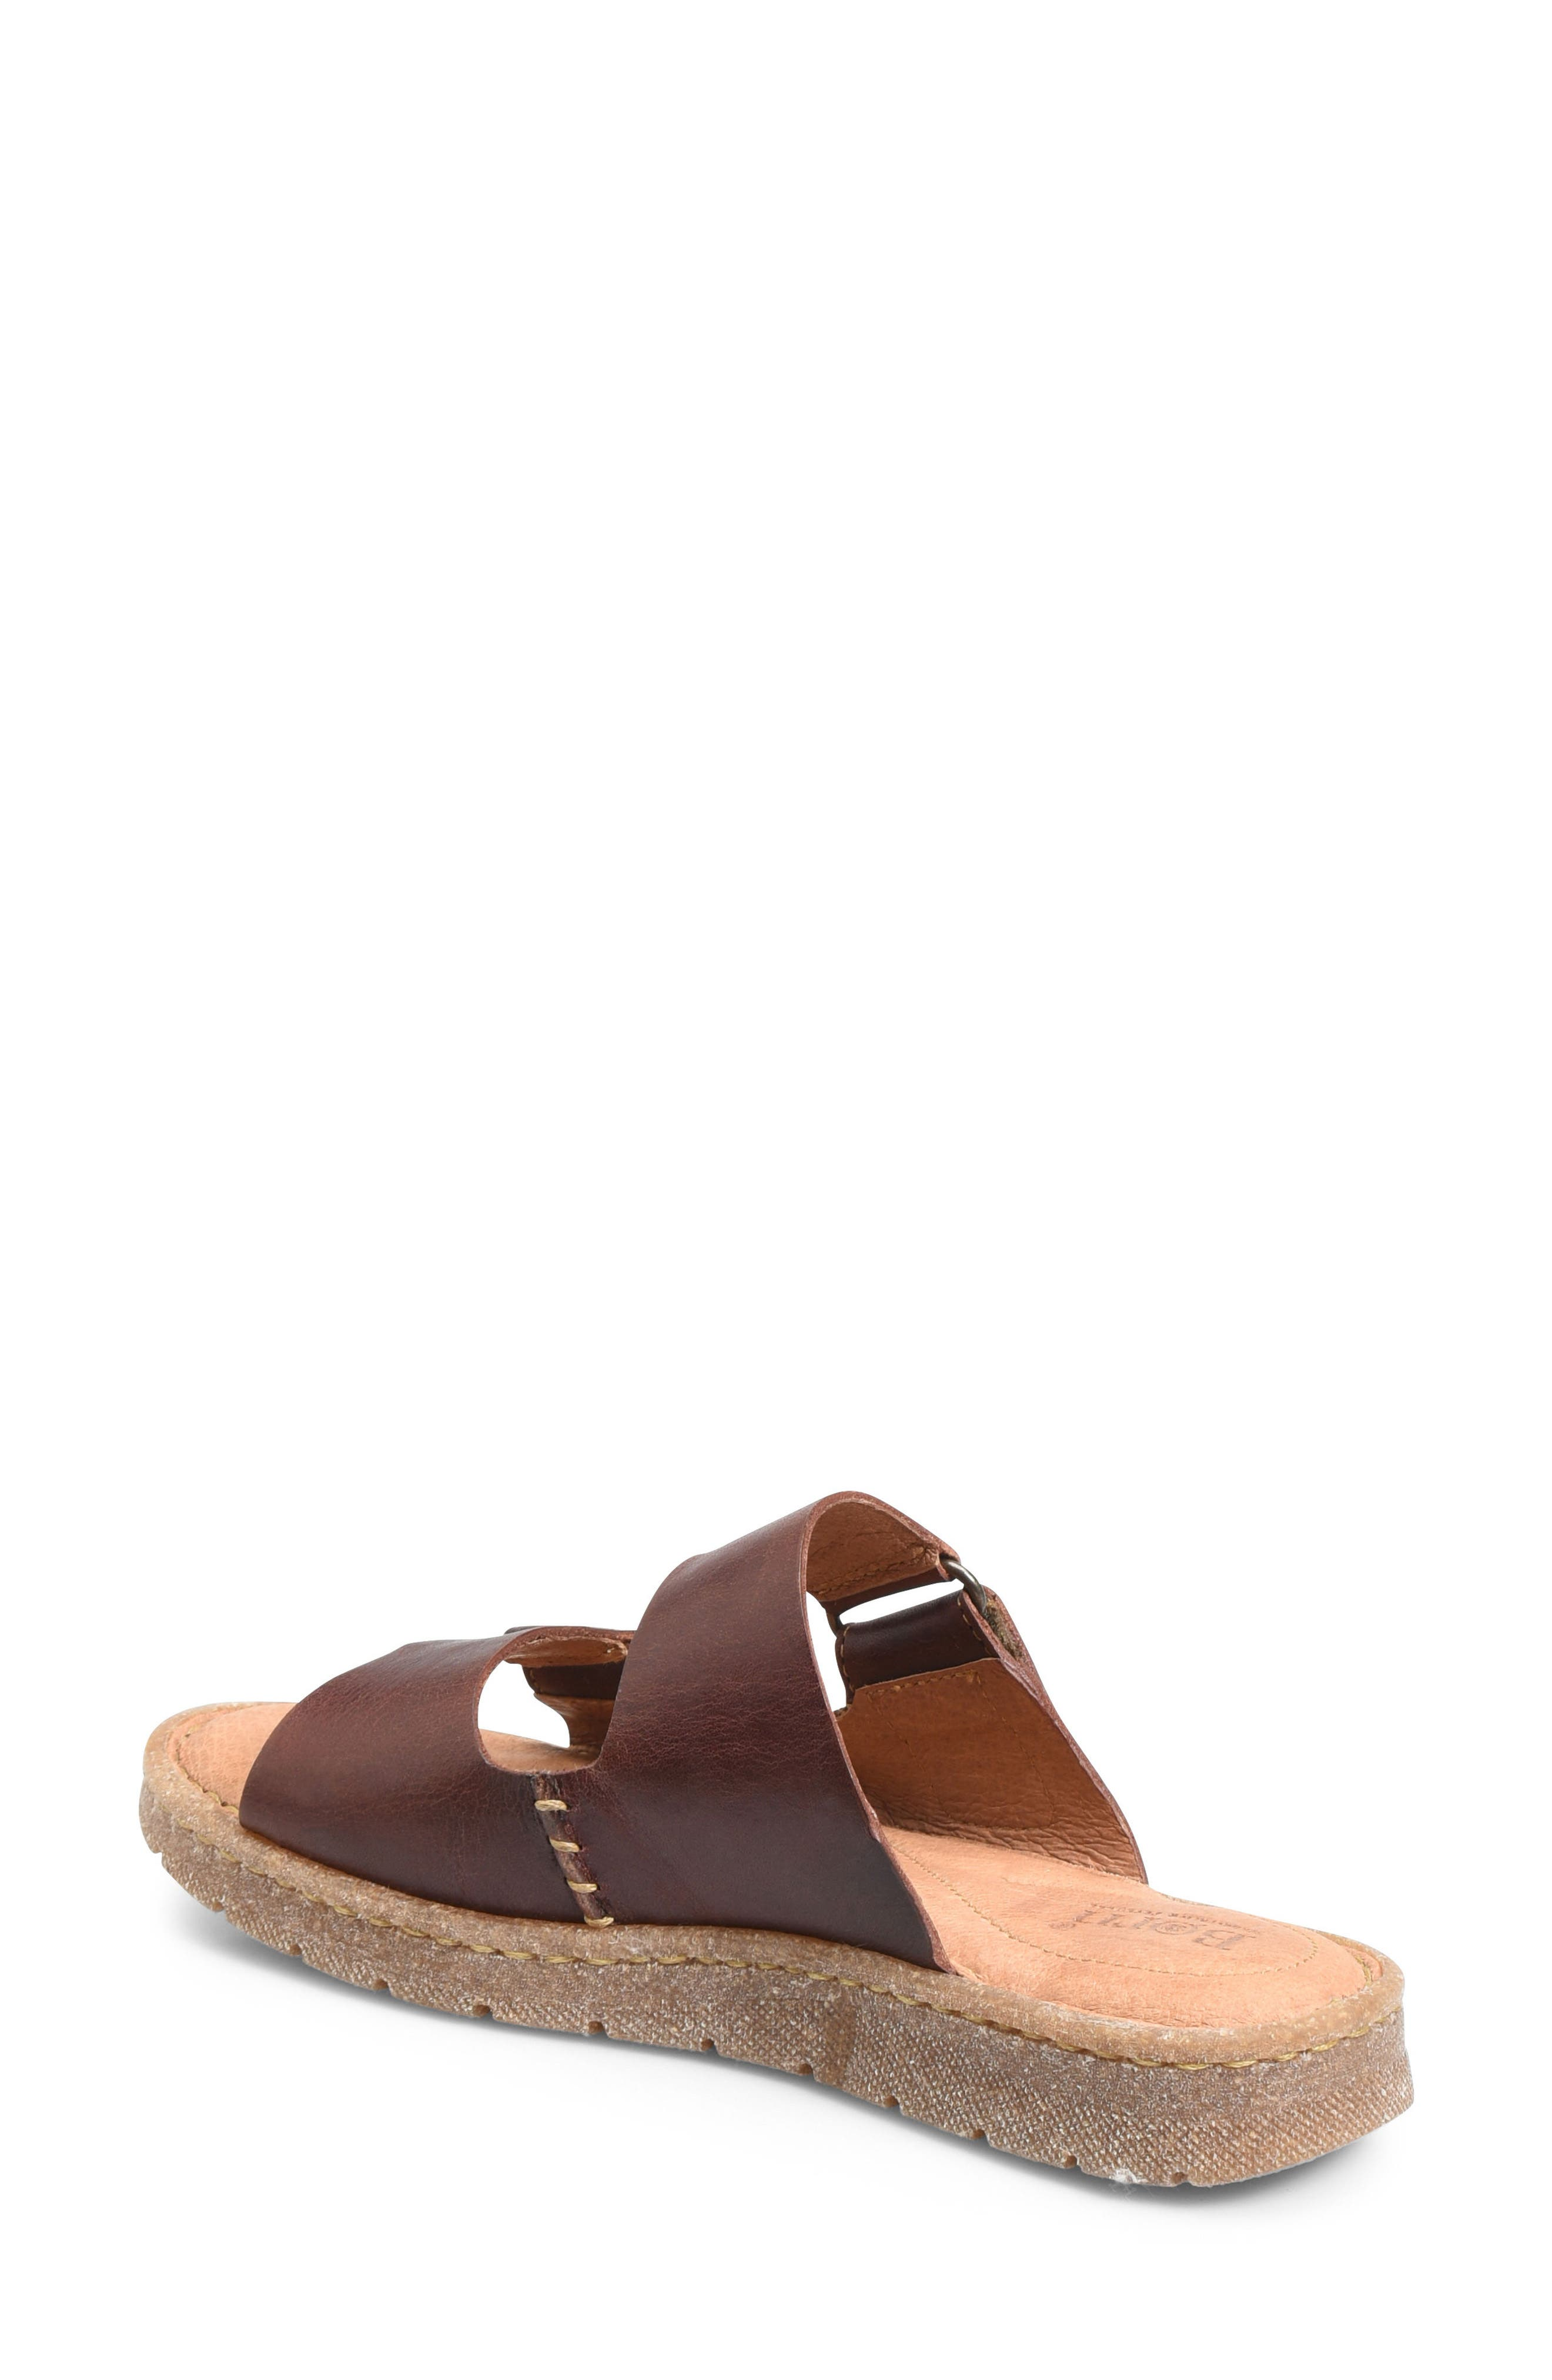 BØRN,                             Dominica Sandal,                             Alternate thumbnail 2, color,                             RUST LEATHER